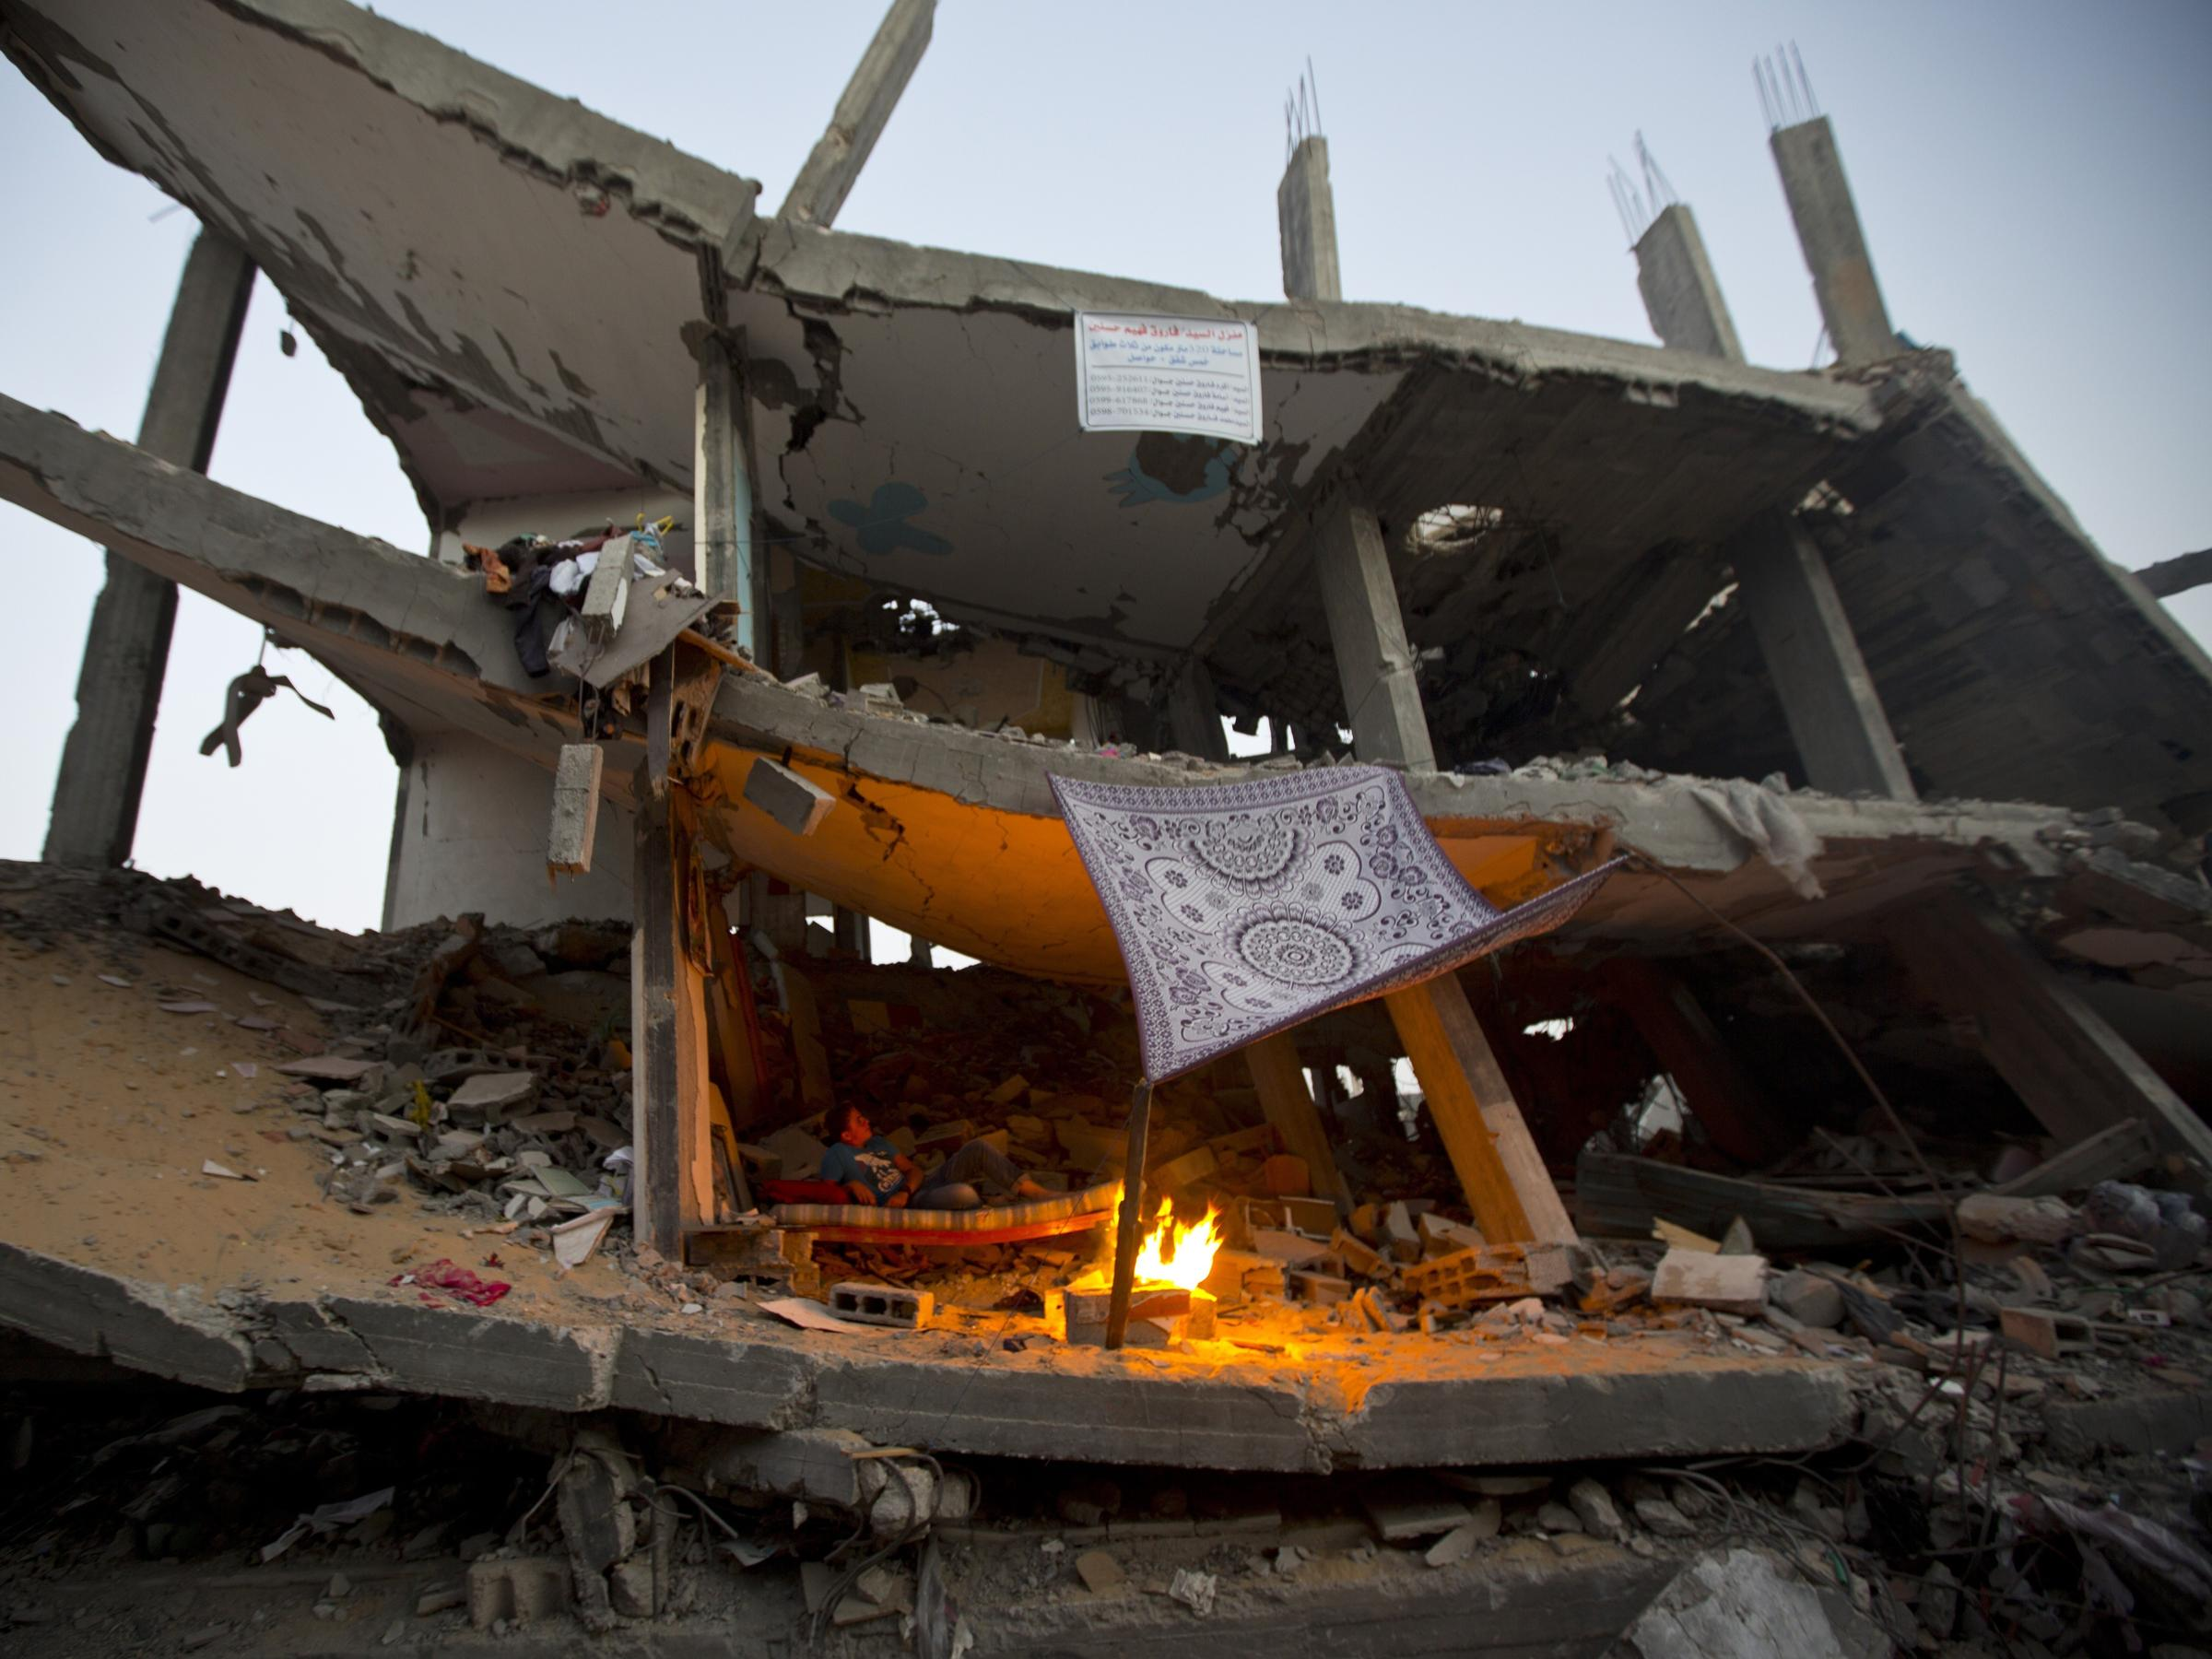 People Are Going To Rebel': Slow Pace Of Rebuilding Frustrates Gazans ...